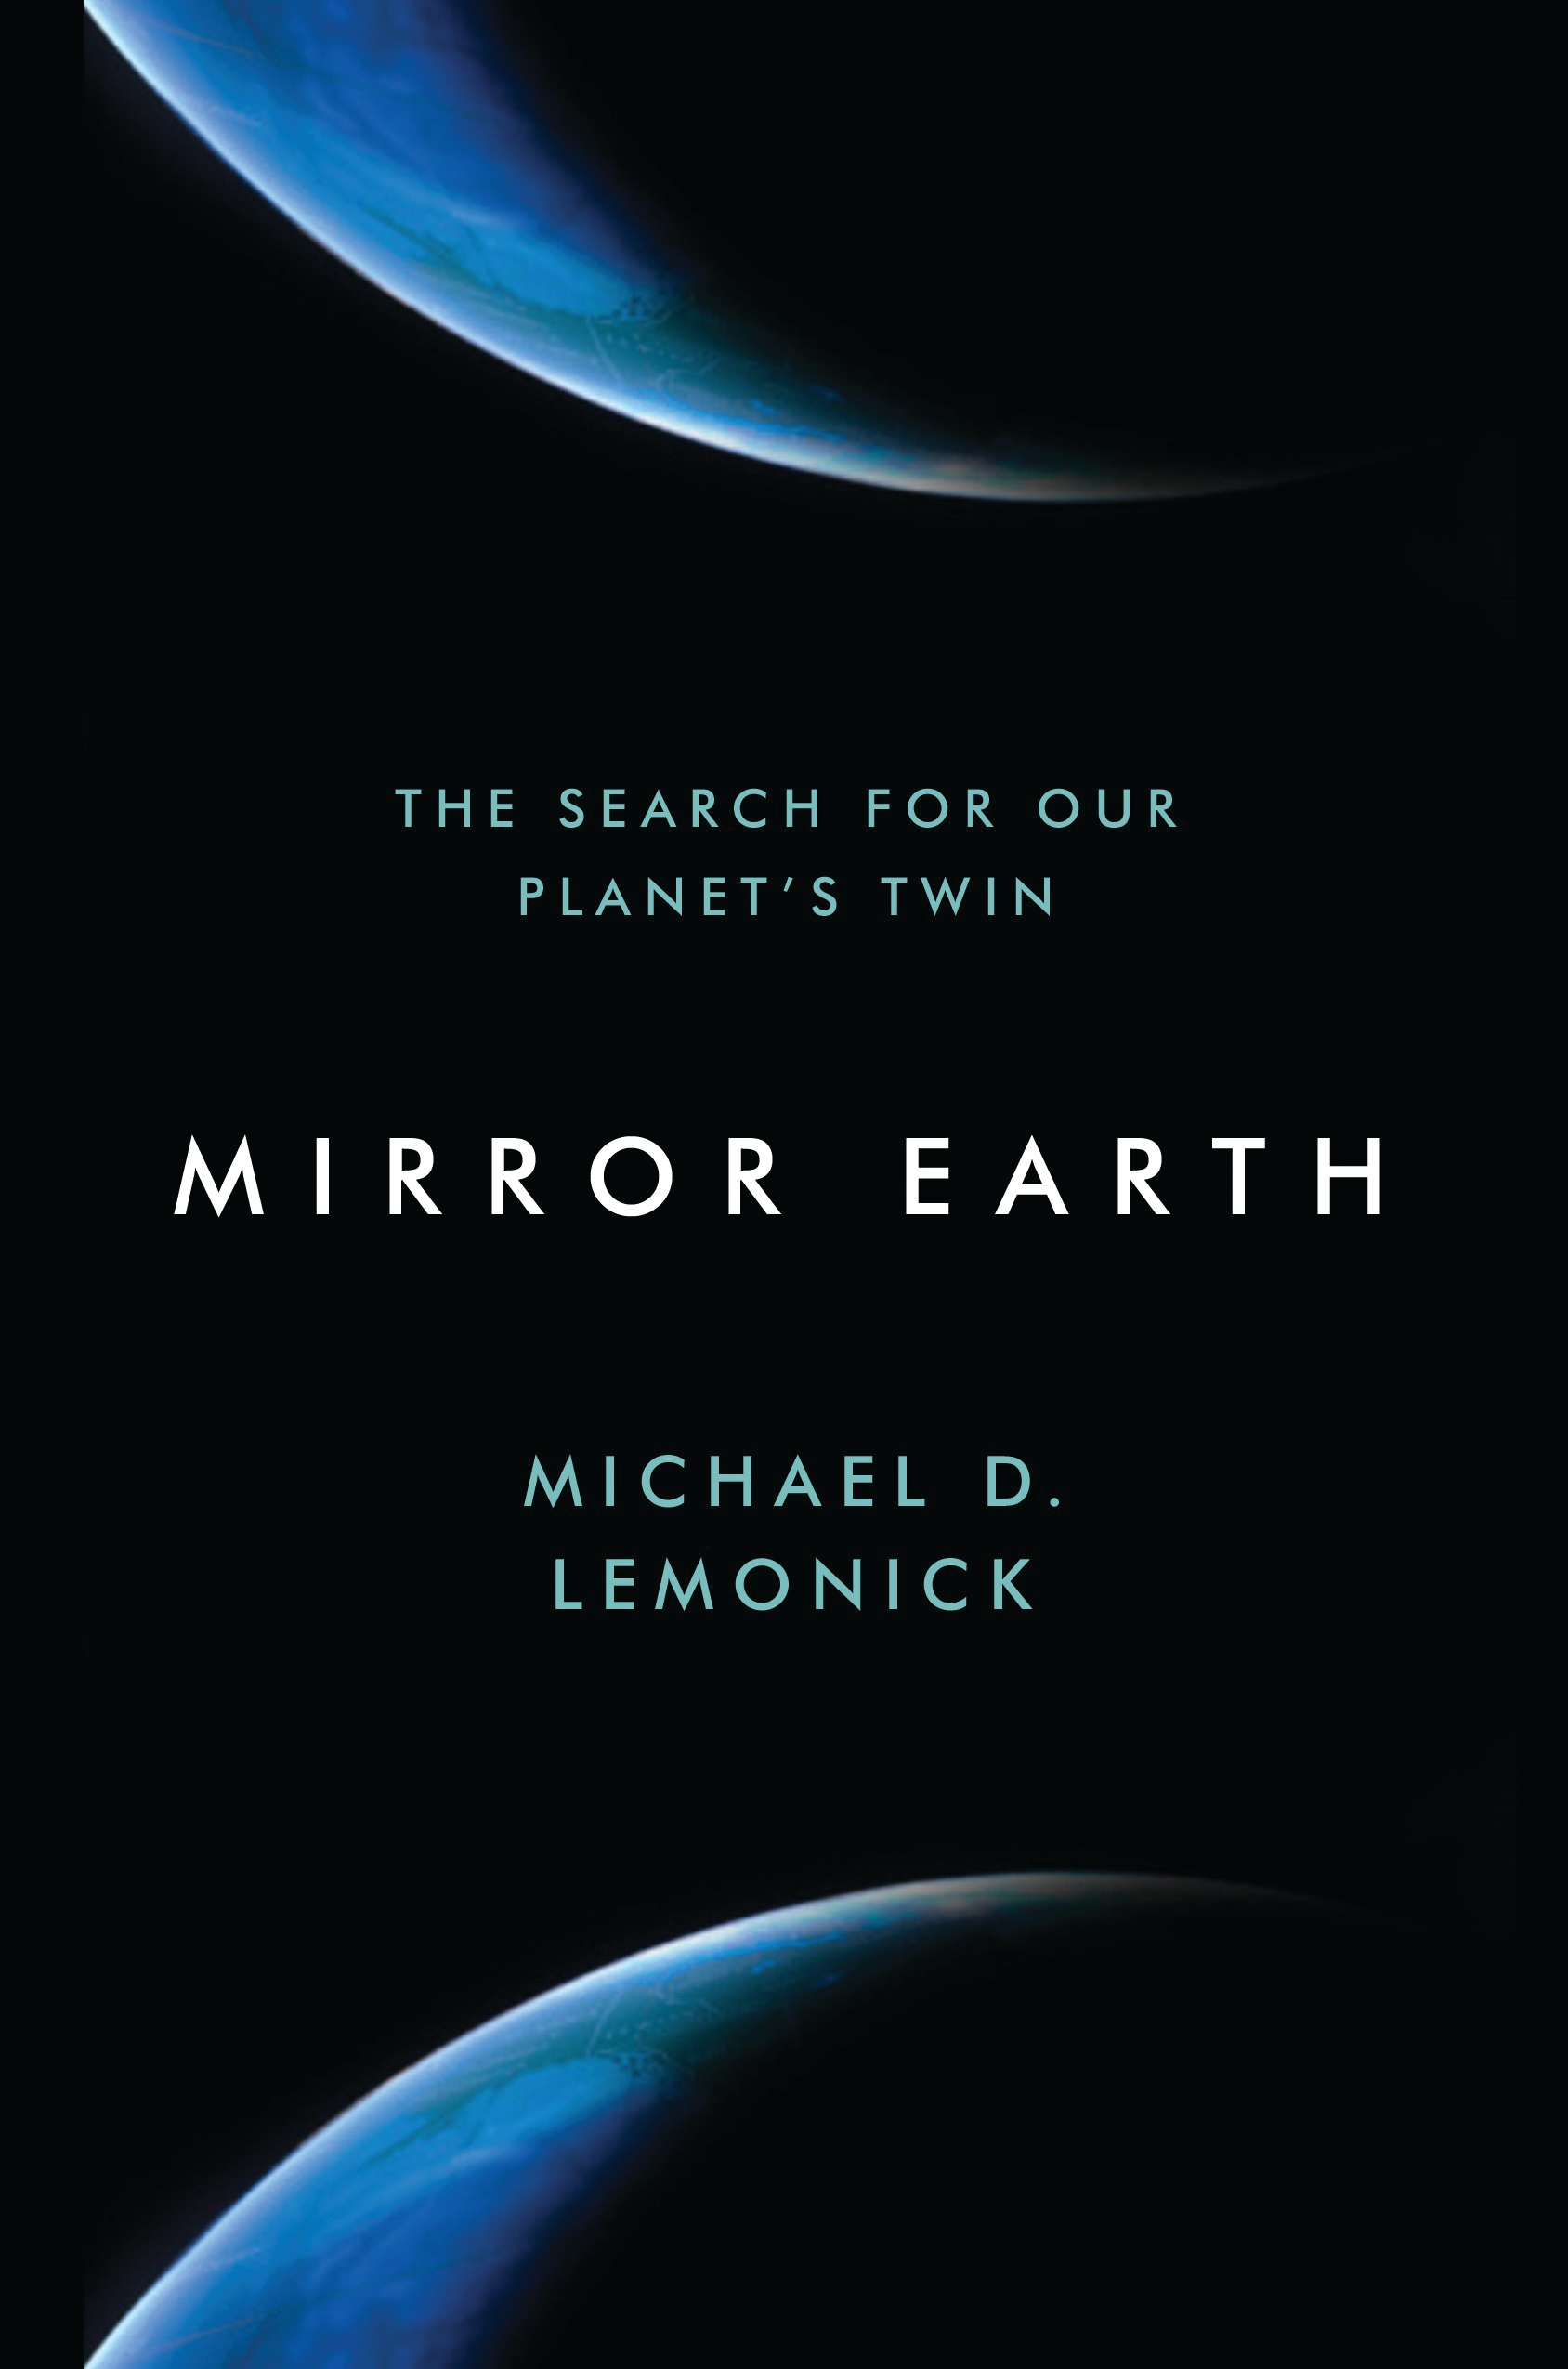 Mirror Earth The Search for Our Planet's Twin